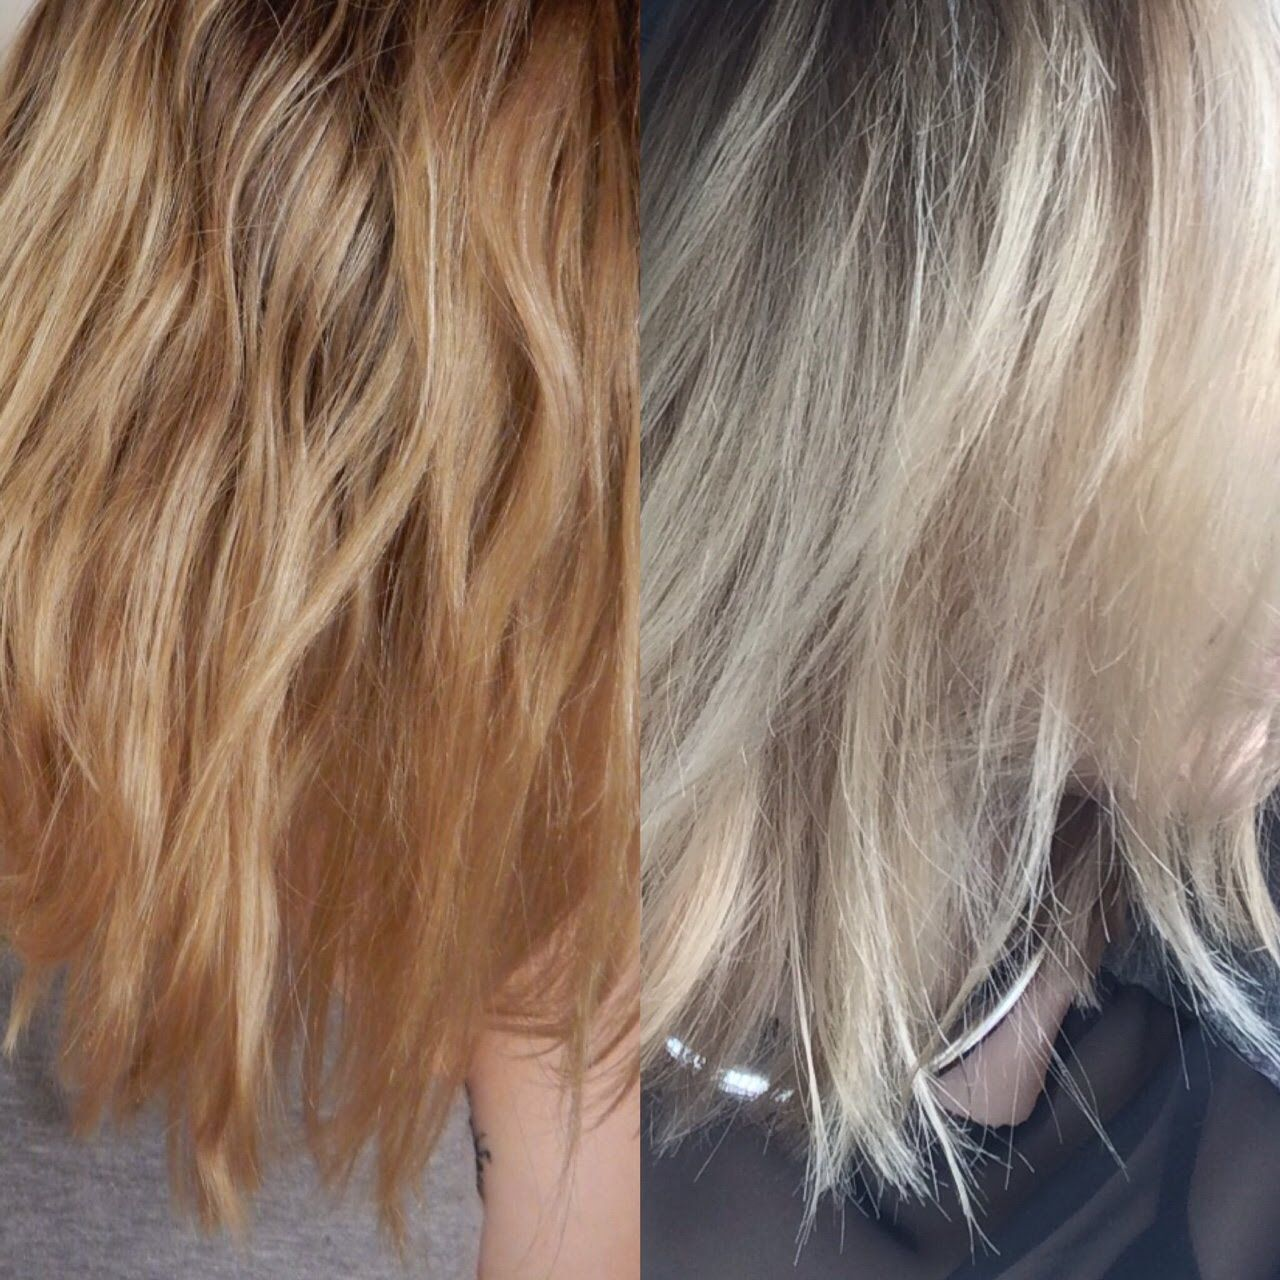 Demo At 3 20 Watch In Hd New Video Of Toning My Blonde Bit Ly X2f 1pyo5ej How I Tone My Medium Light Brassy Hair Brassy Blonde Hair Blonde Hair At Home